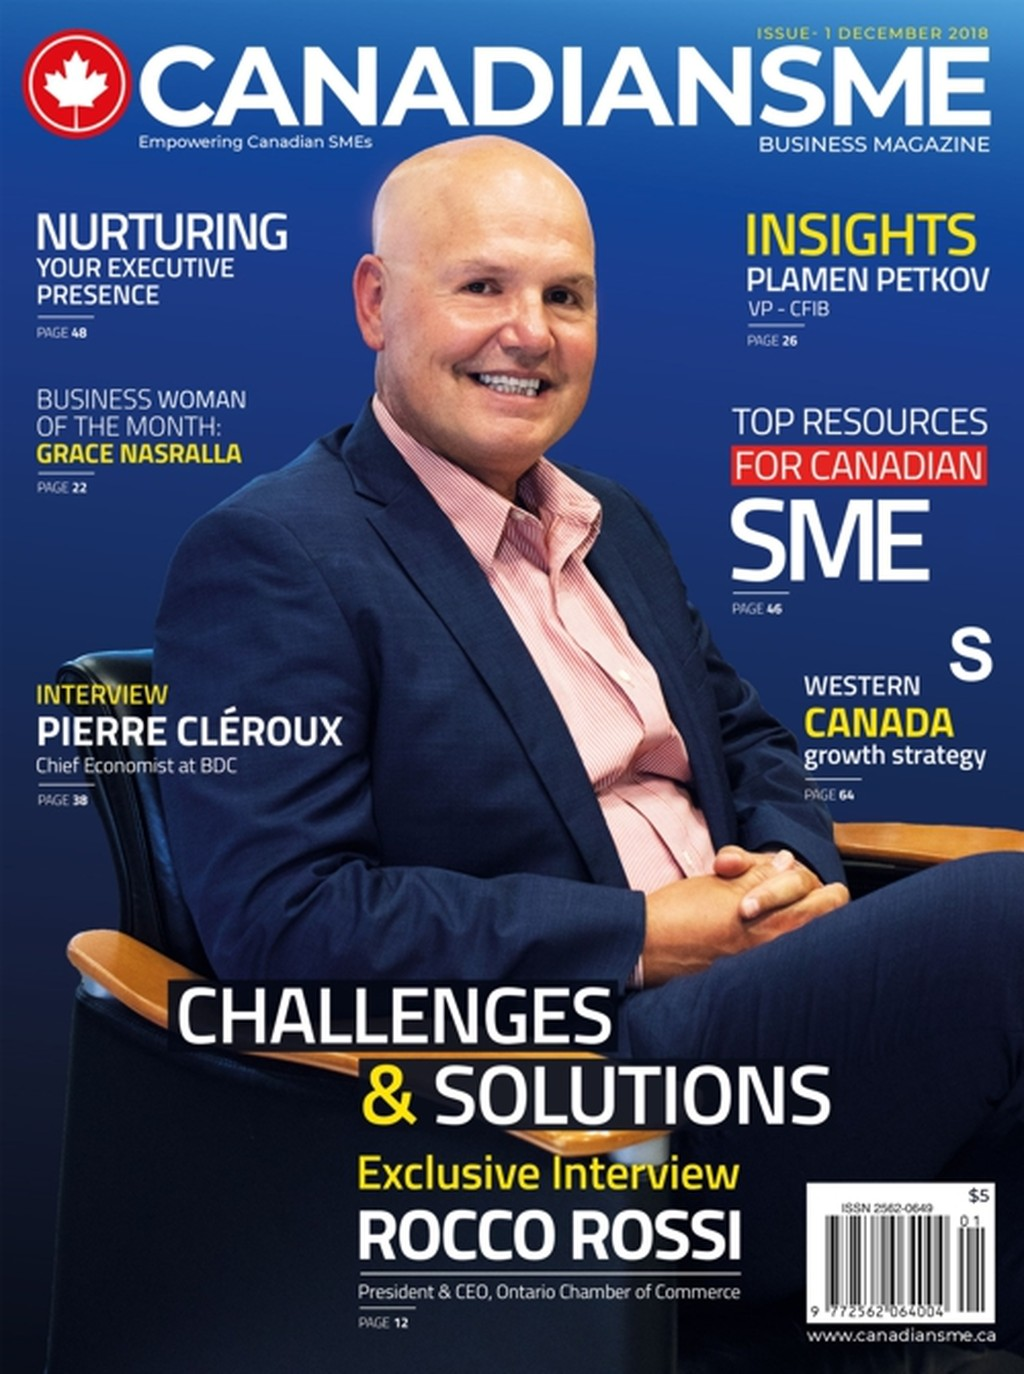 Cover of Canadian SME magazine, December 2018 issue